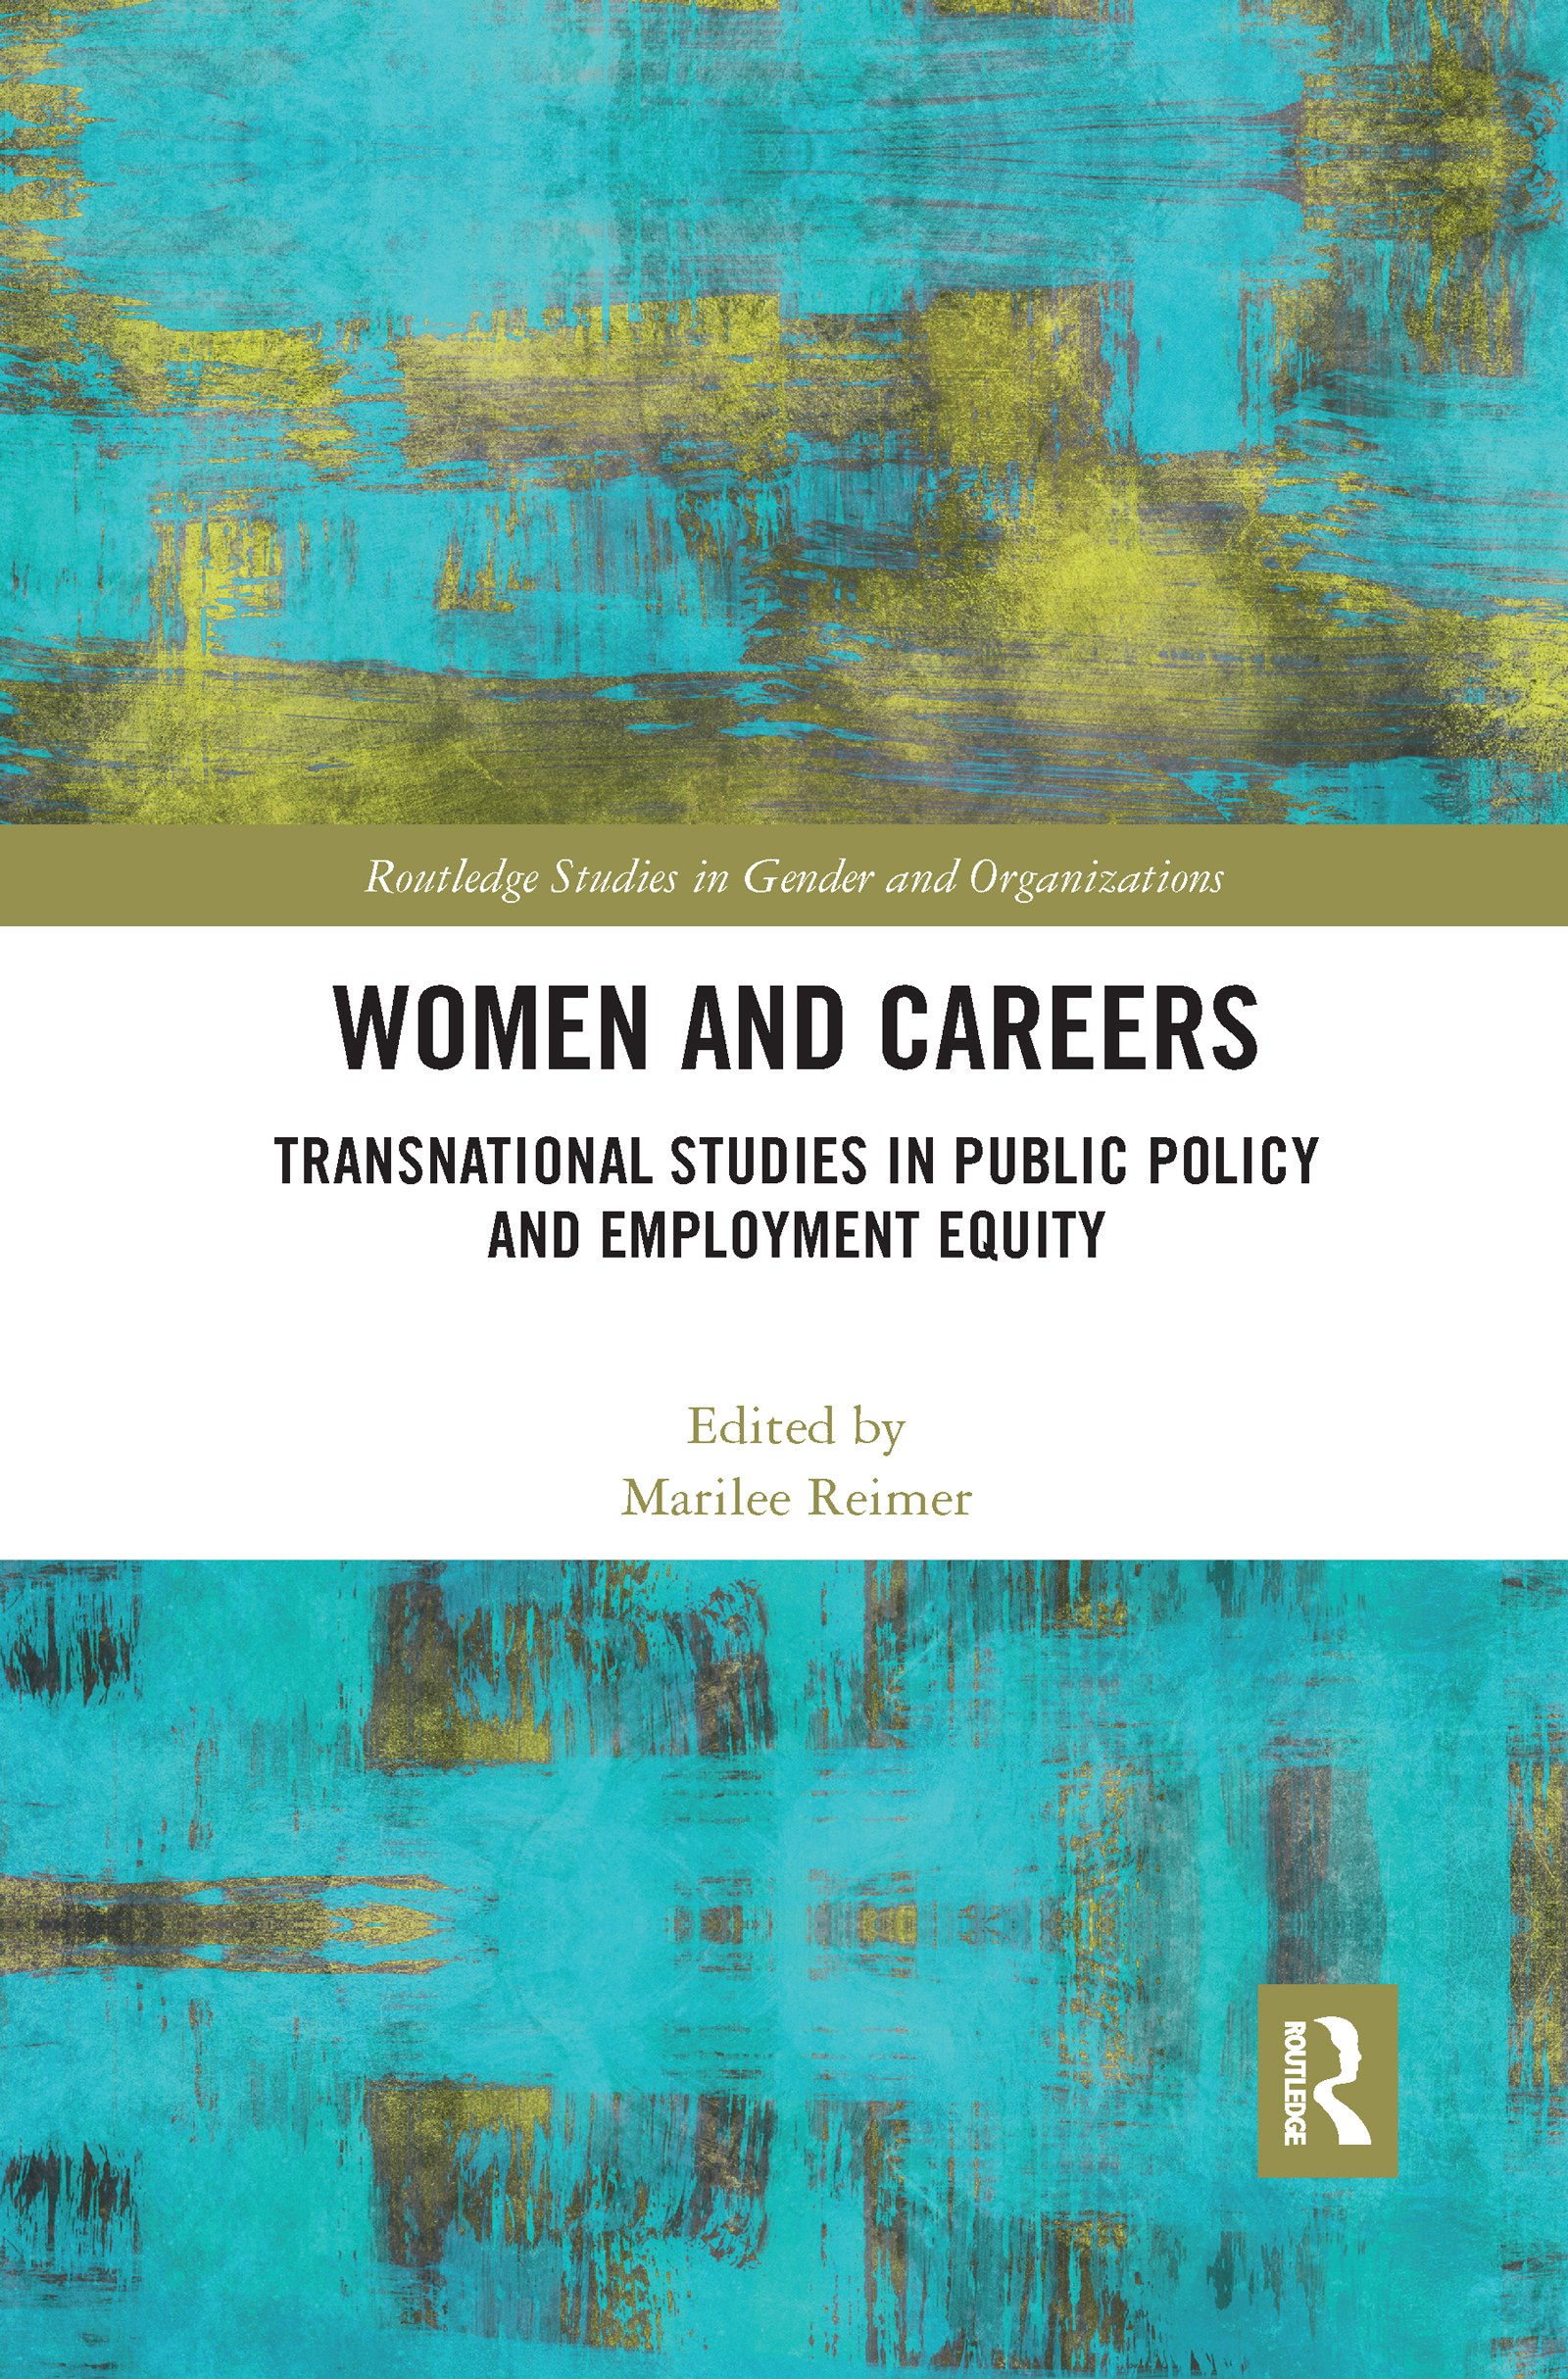 Women and Careers